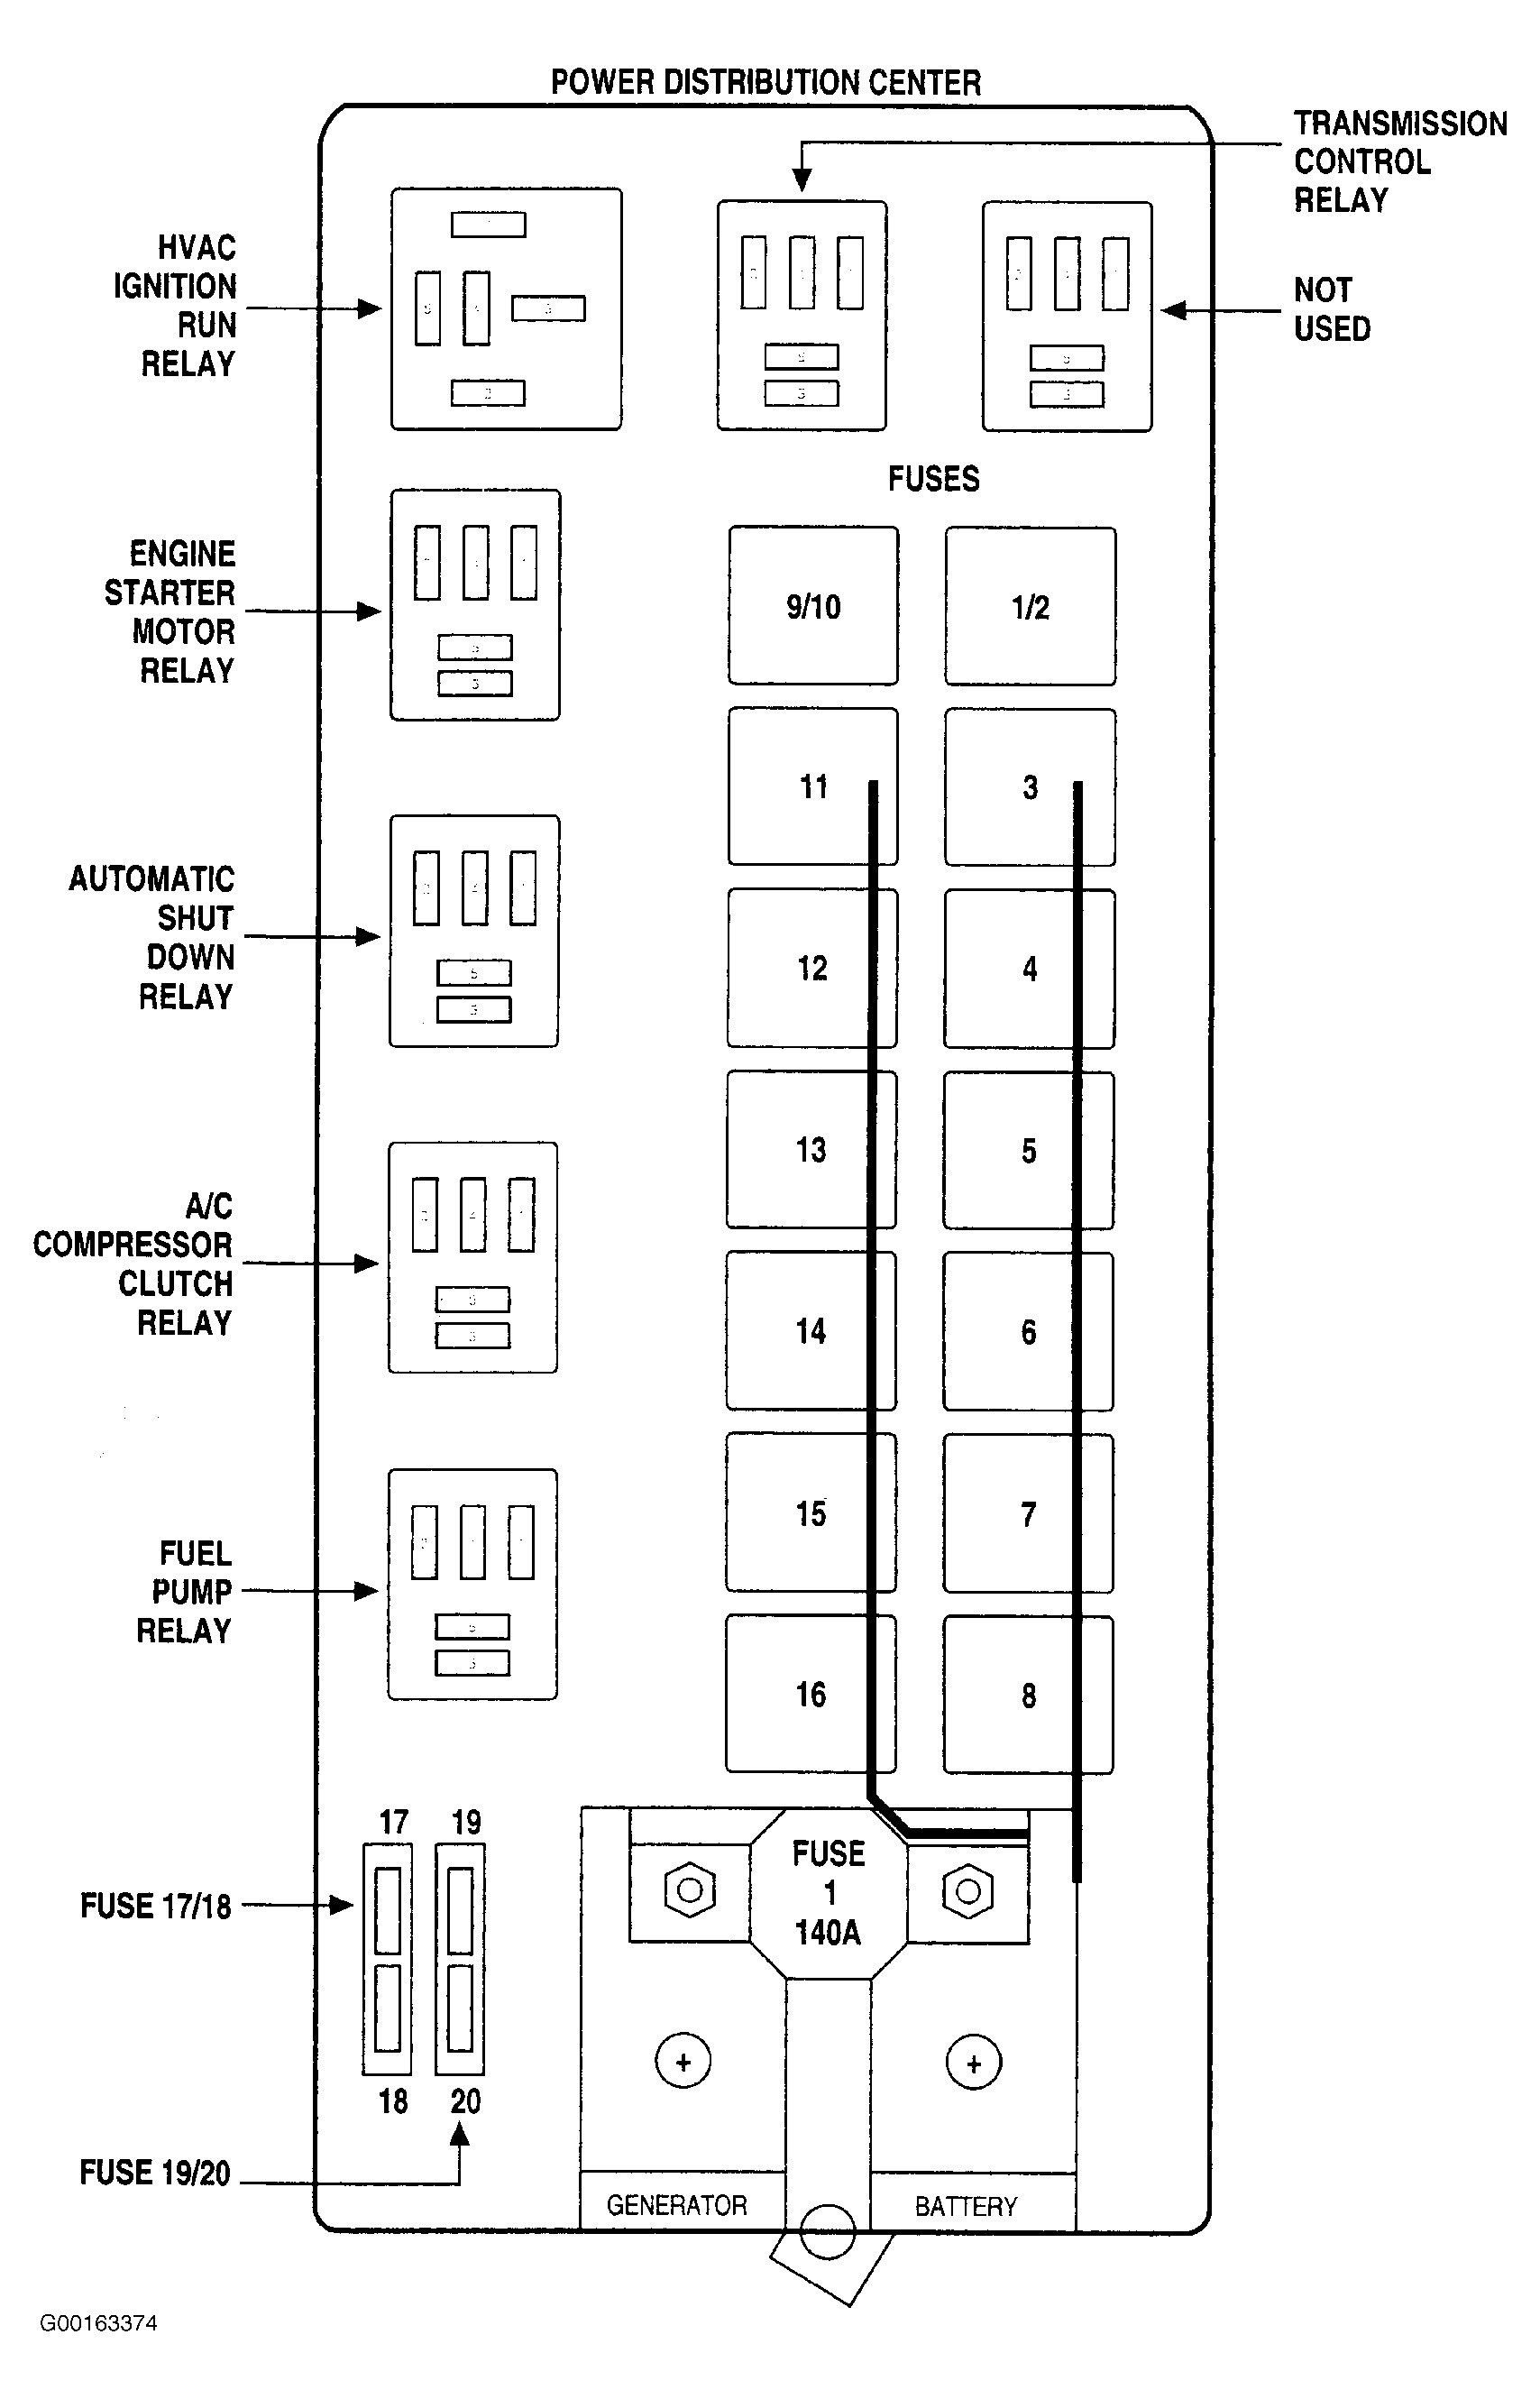 New 2004 Dodge Ram 1500 Infinity Wiring Diagram Diagram